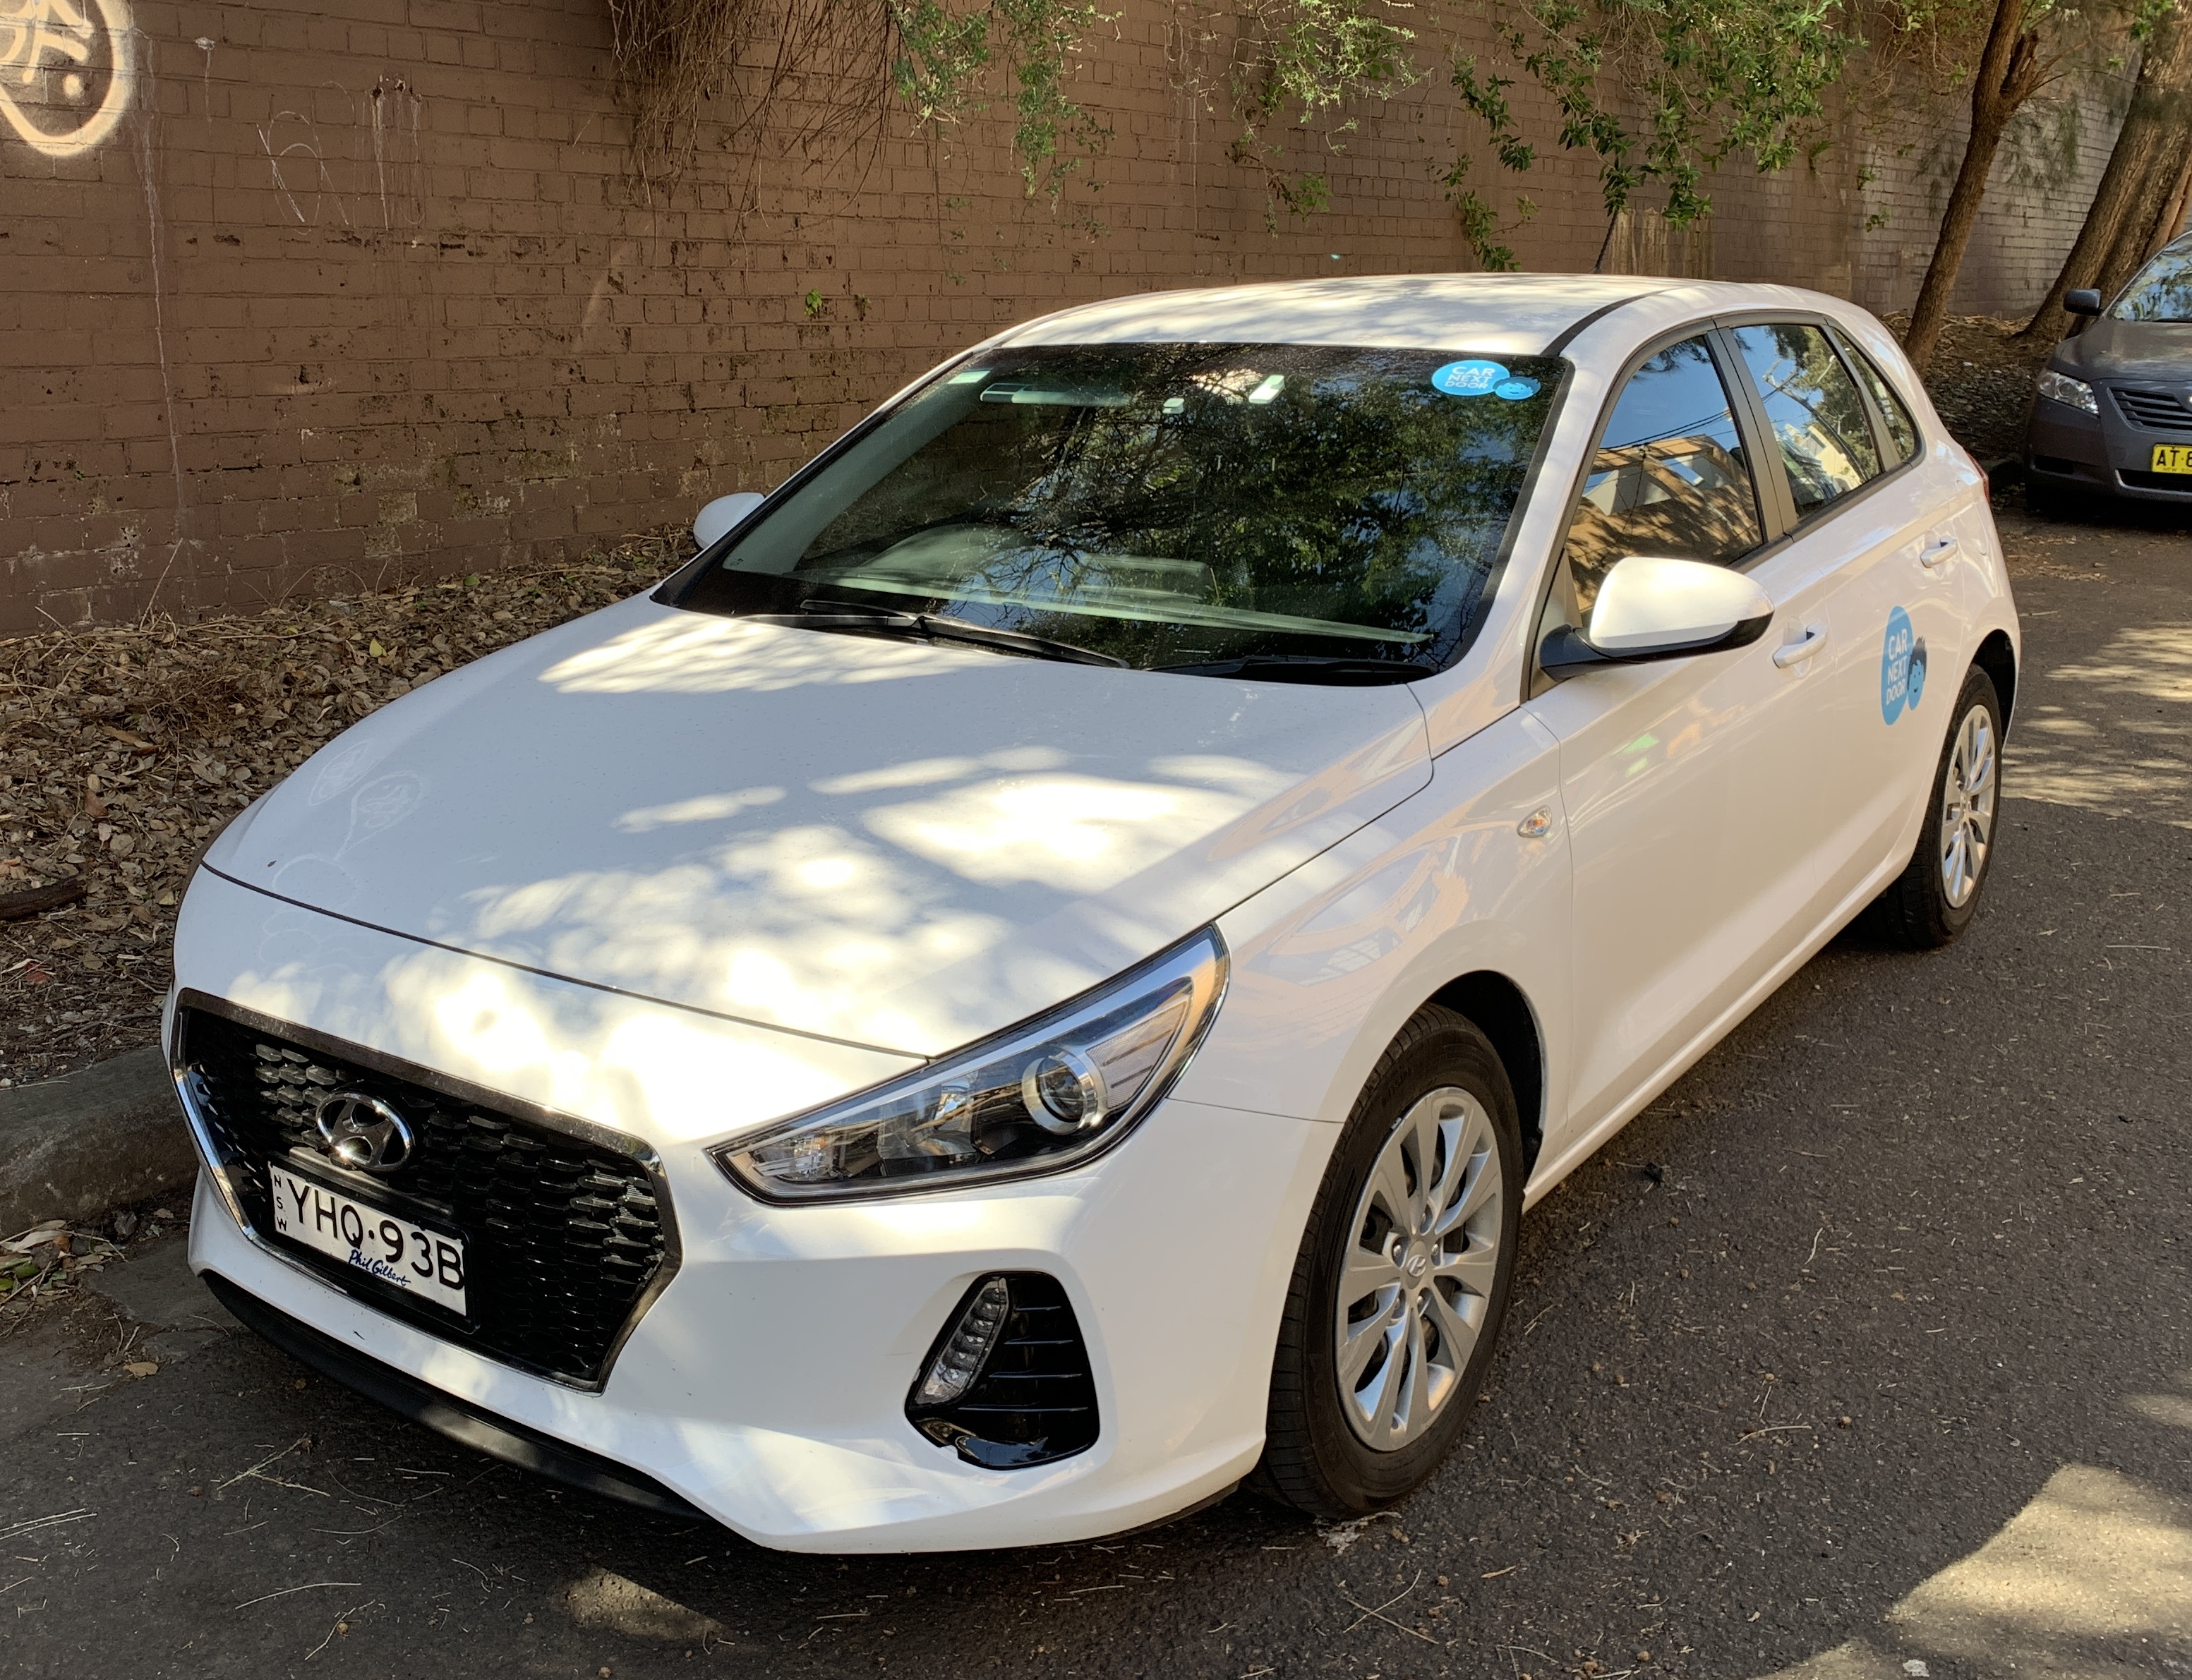 Picture of Meredith's 2018 Hyundai i30